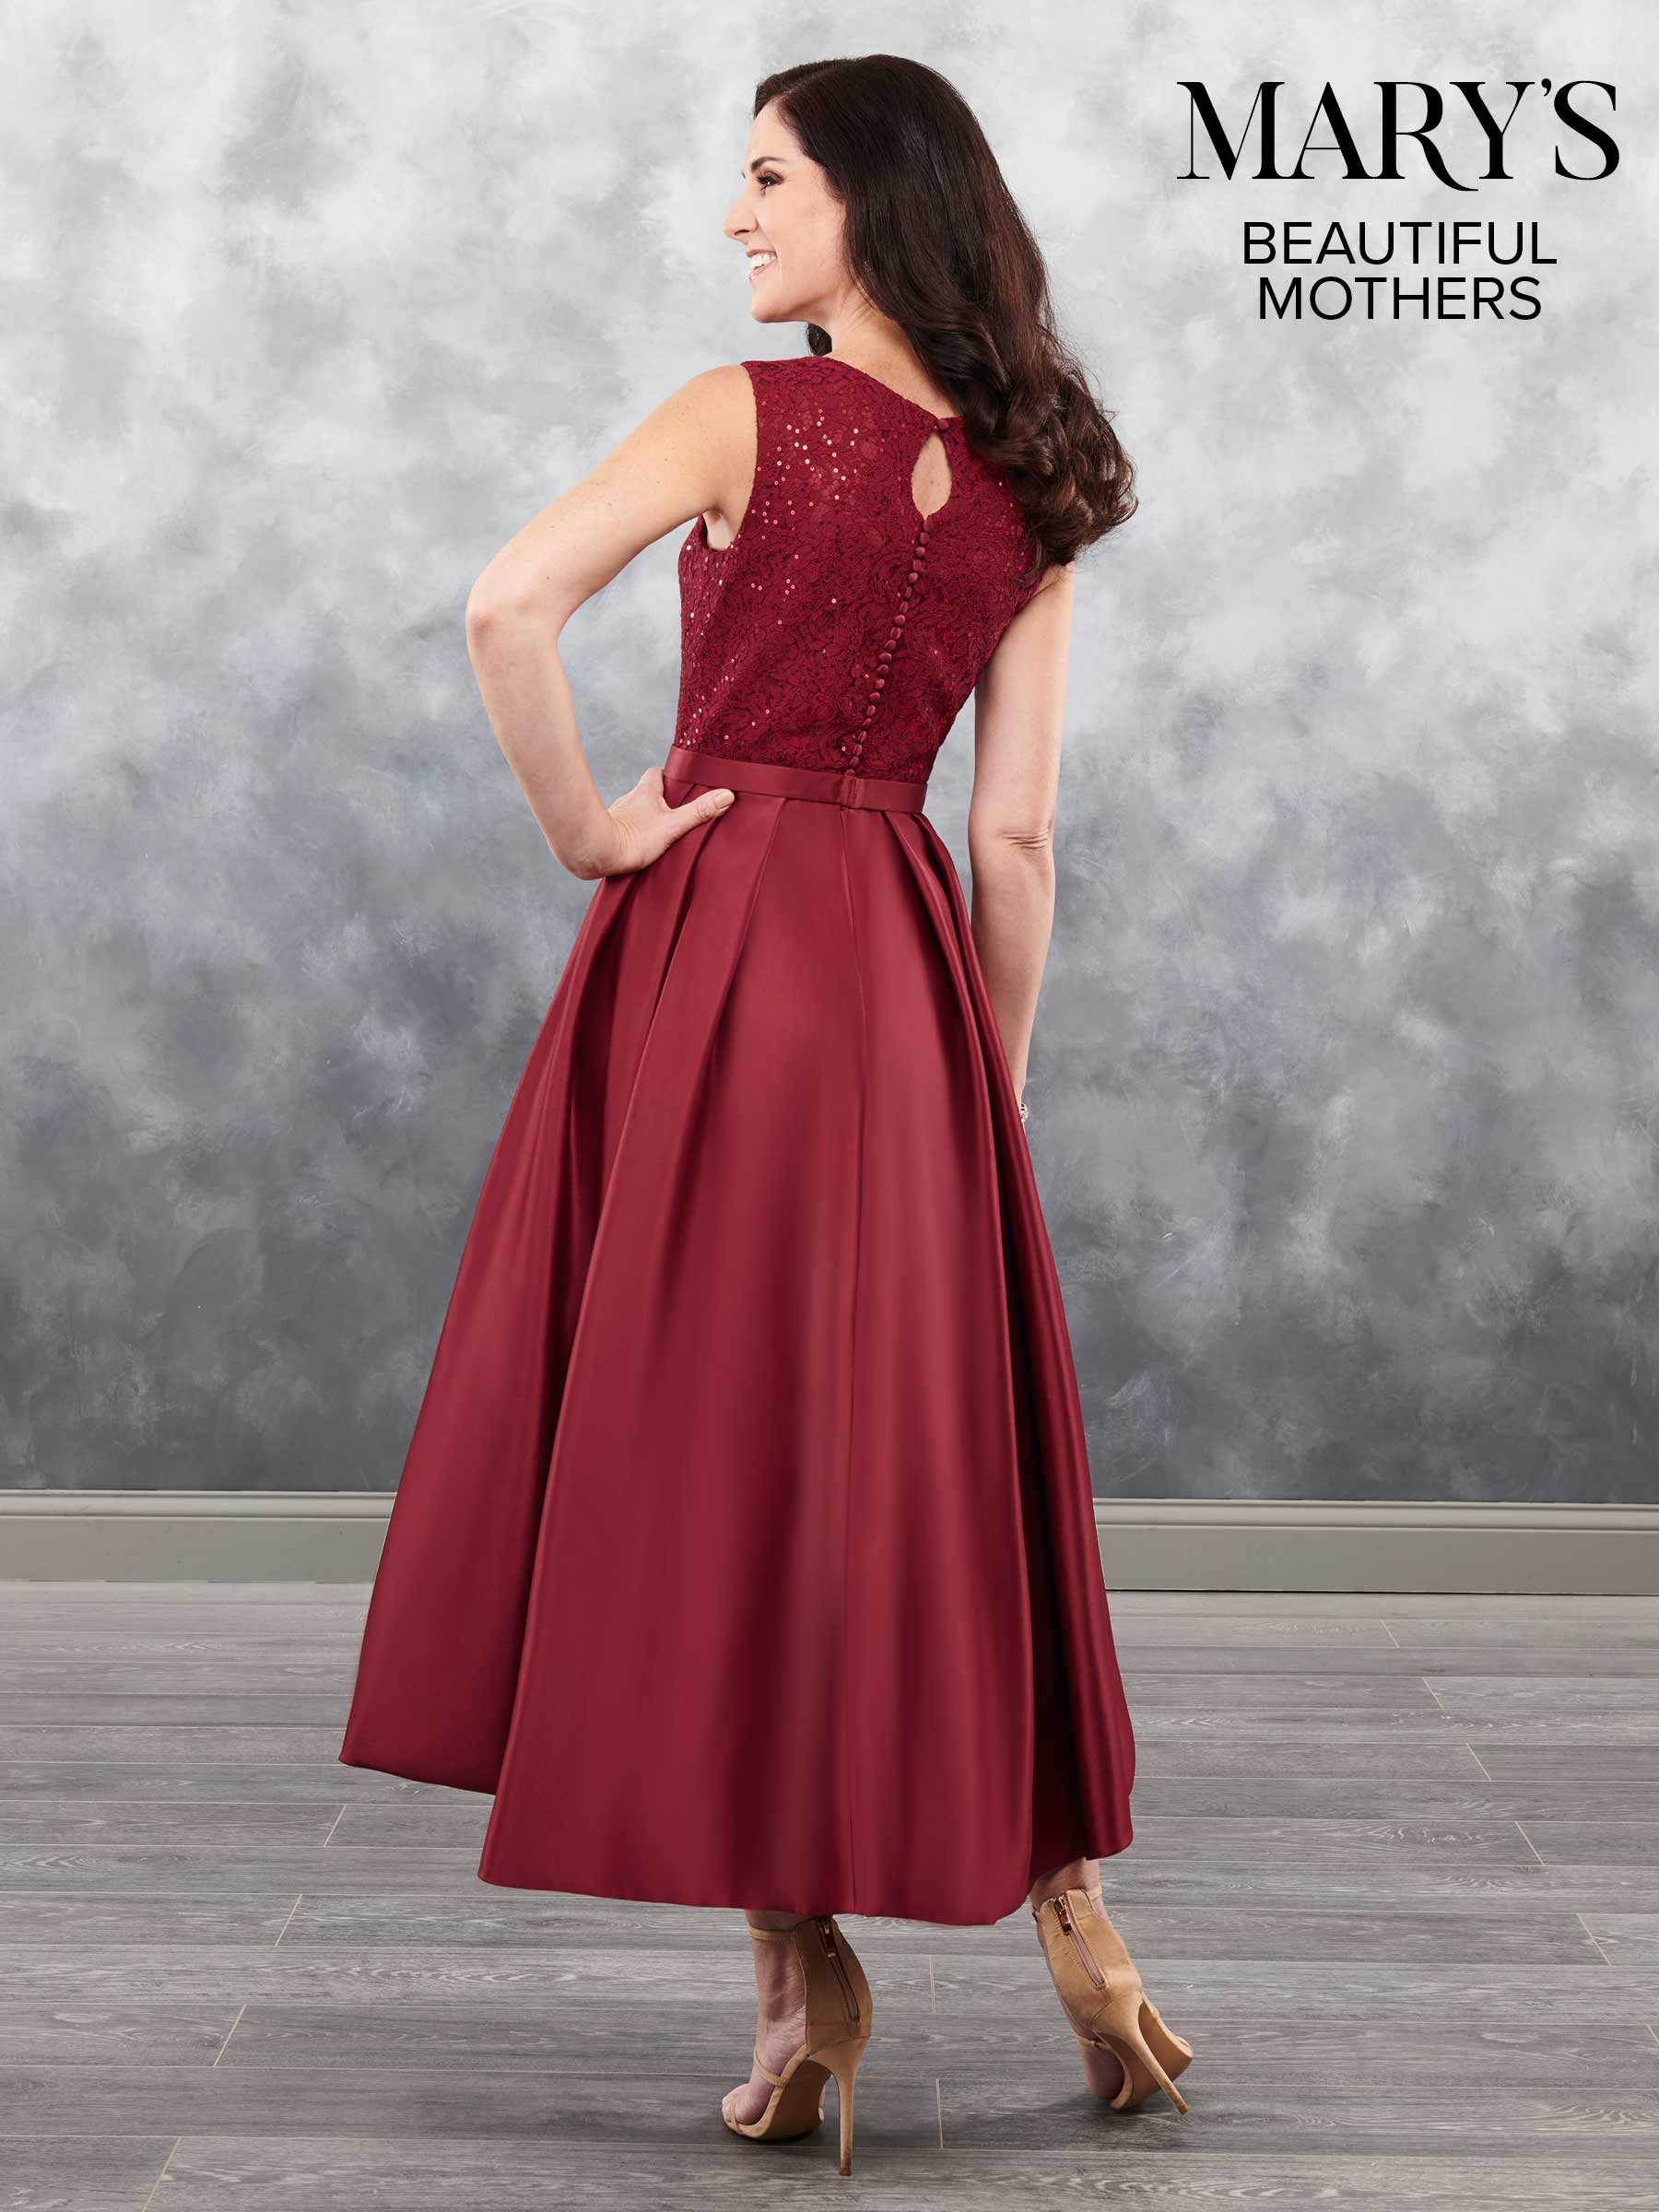 Mother Of The Bride Dresses | Beautiful Mothers | Style - MB8024